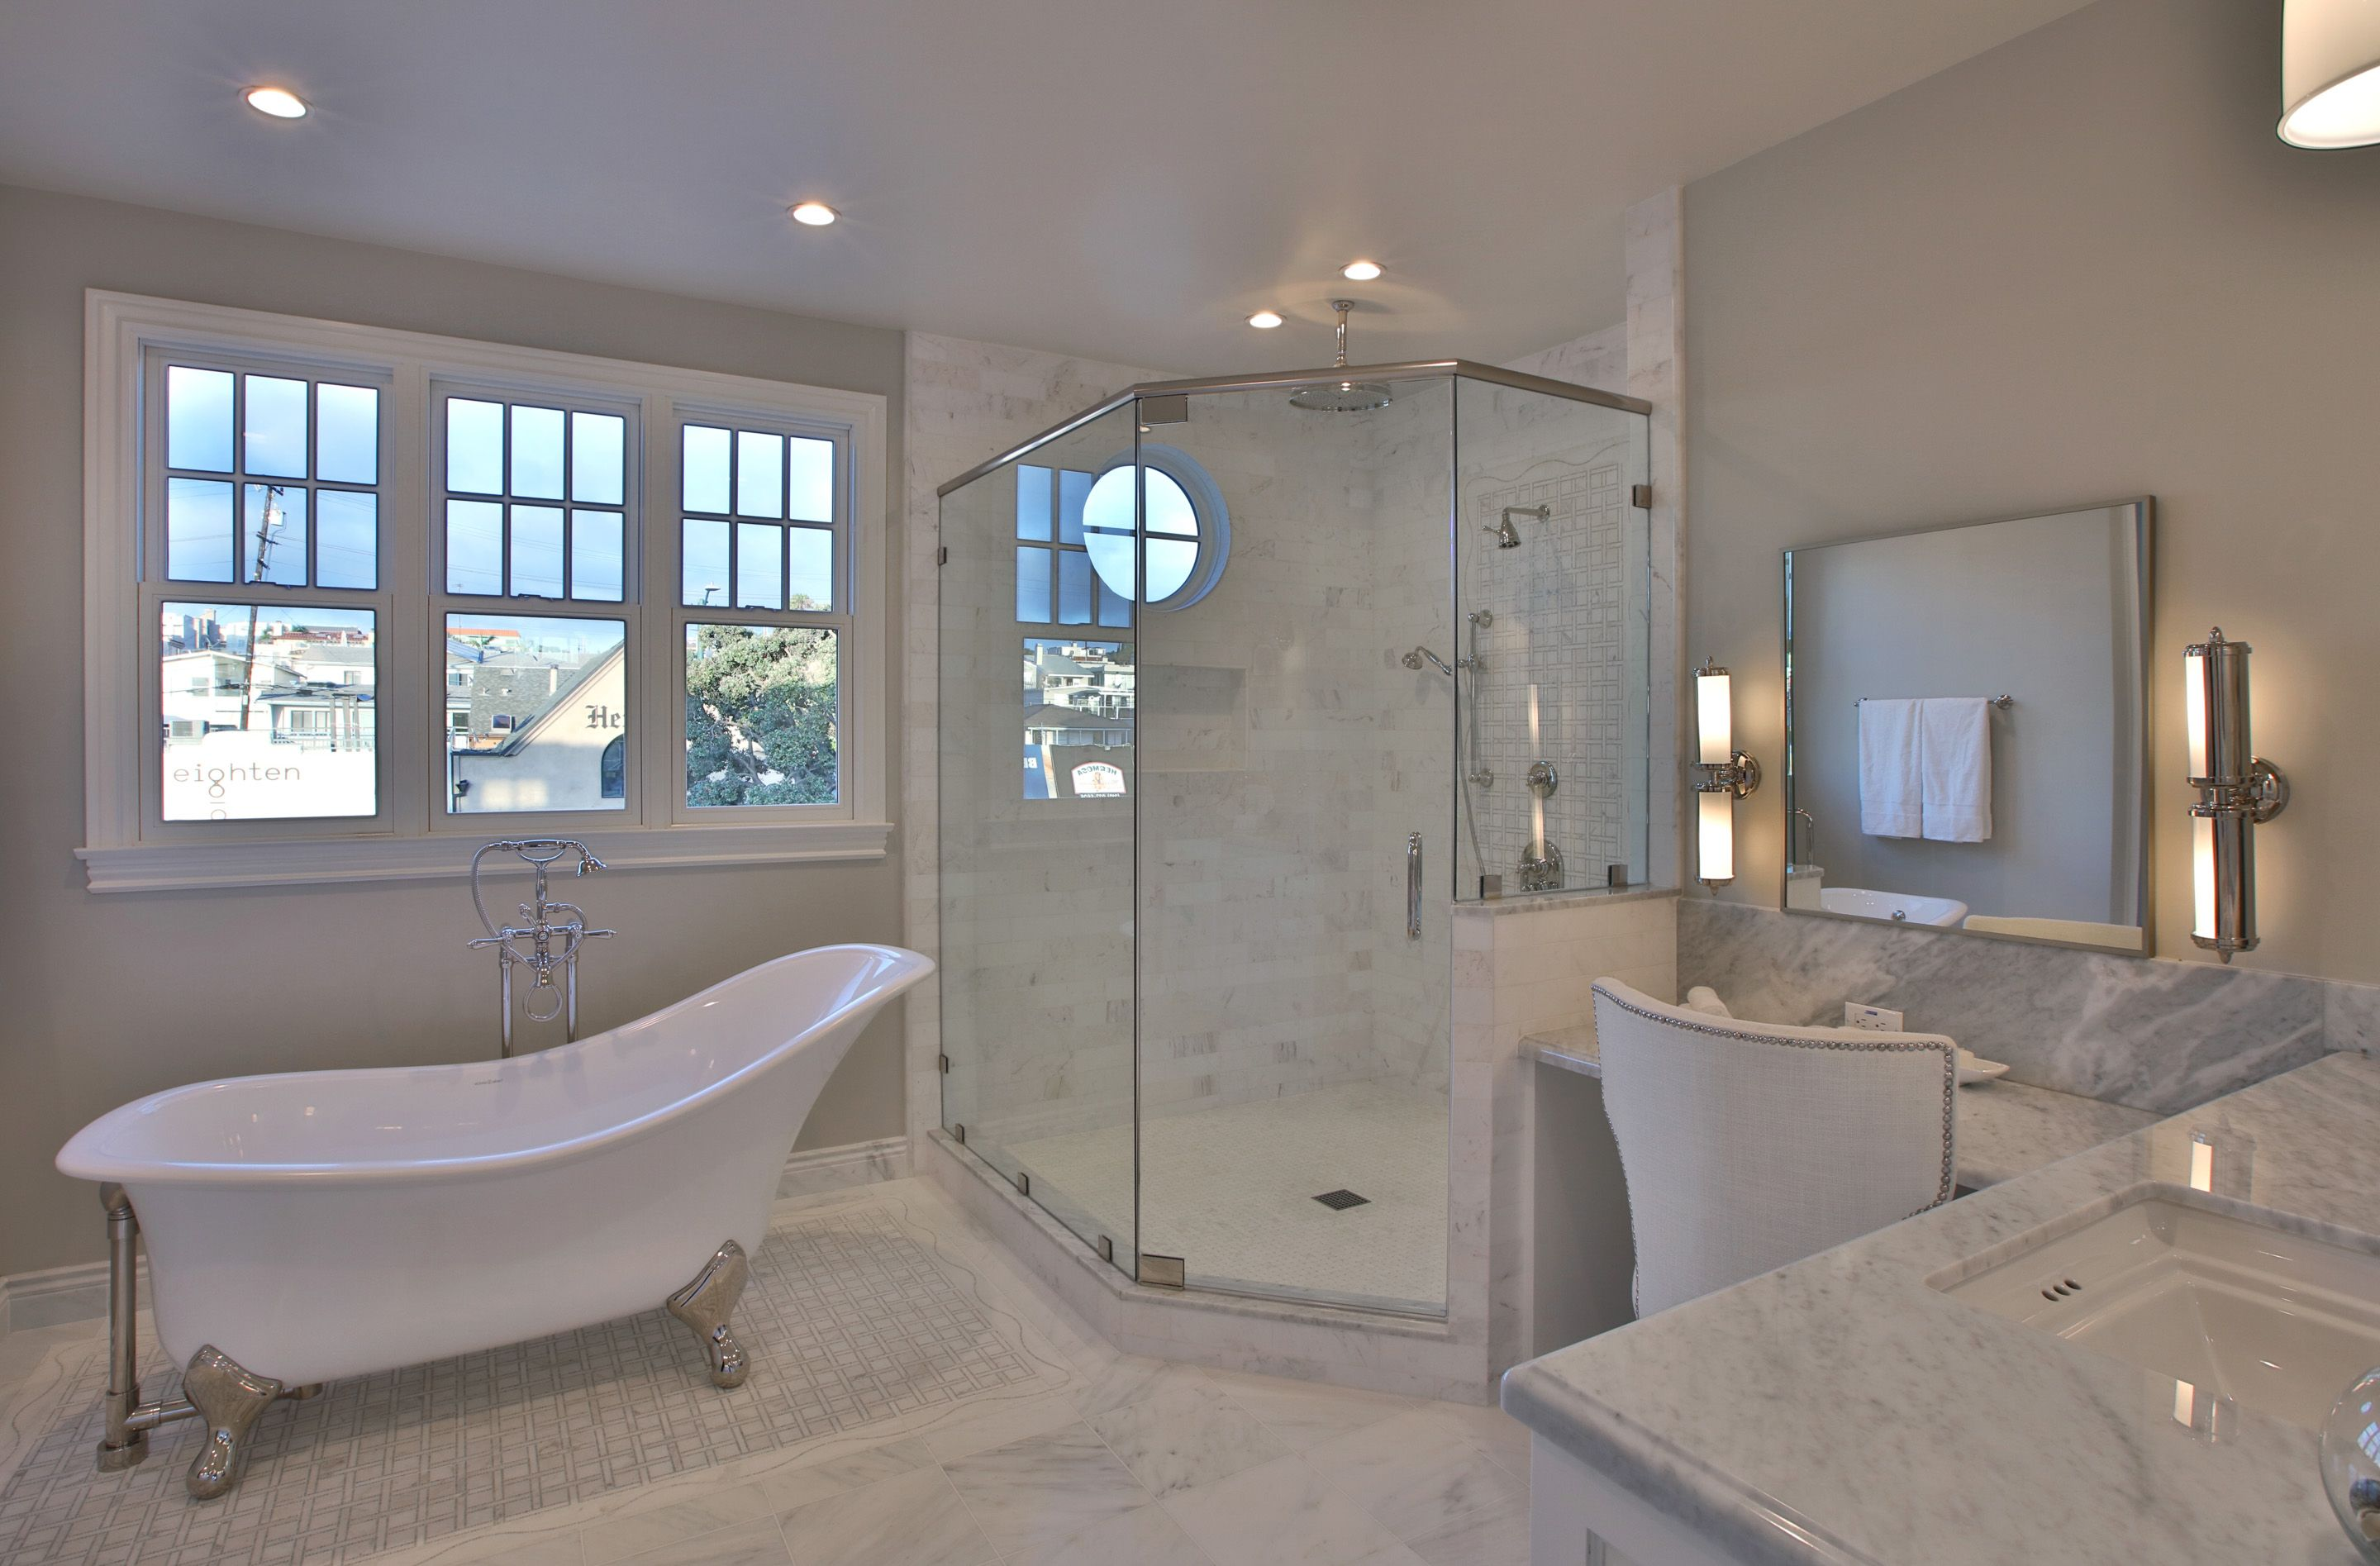 Modern Luxury Master Bath With Clawfoot Tub And Marble Floor With